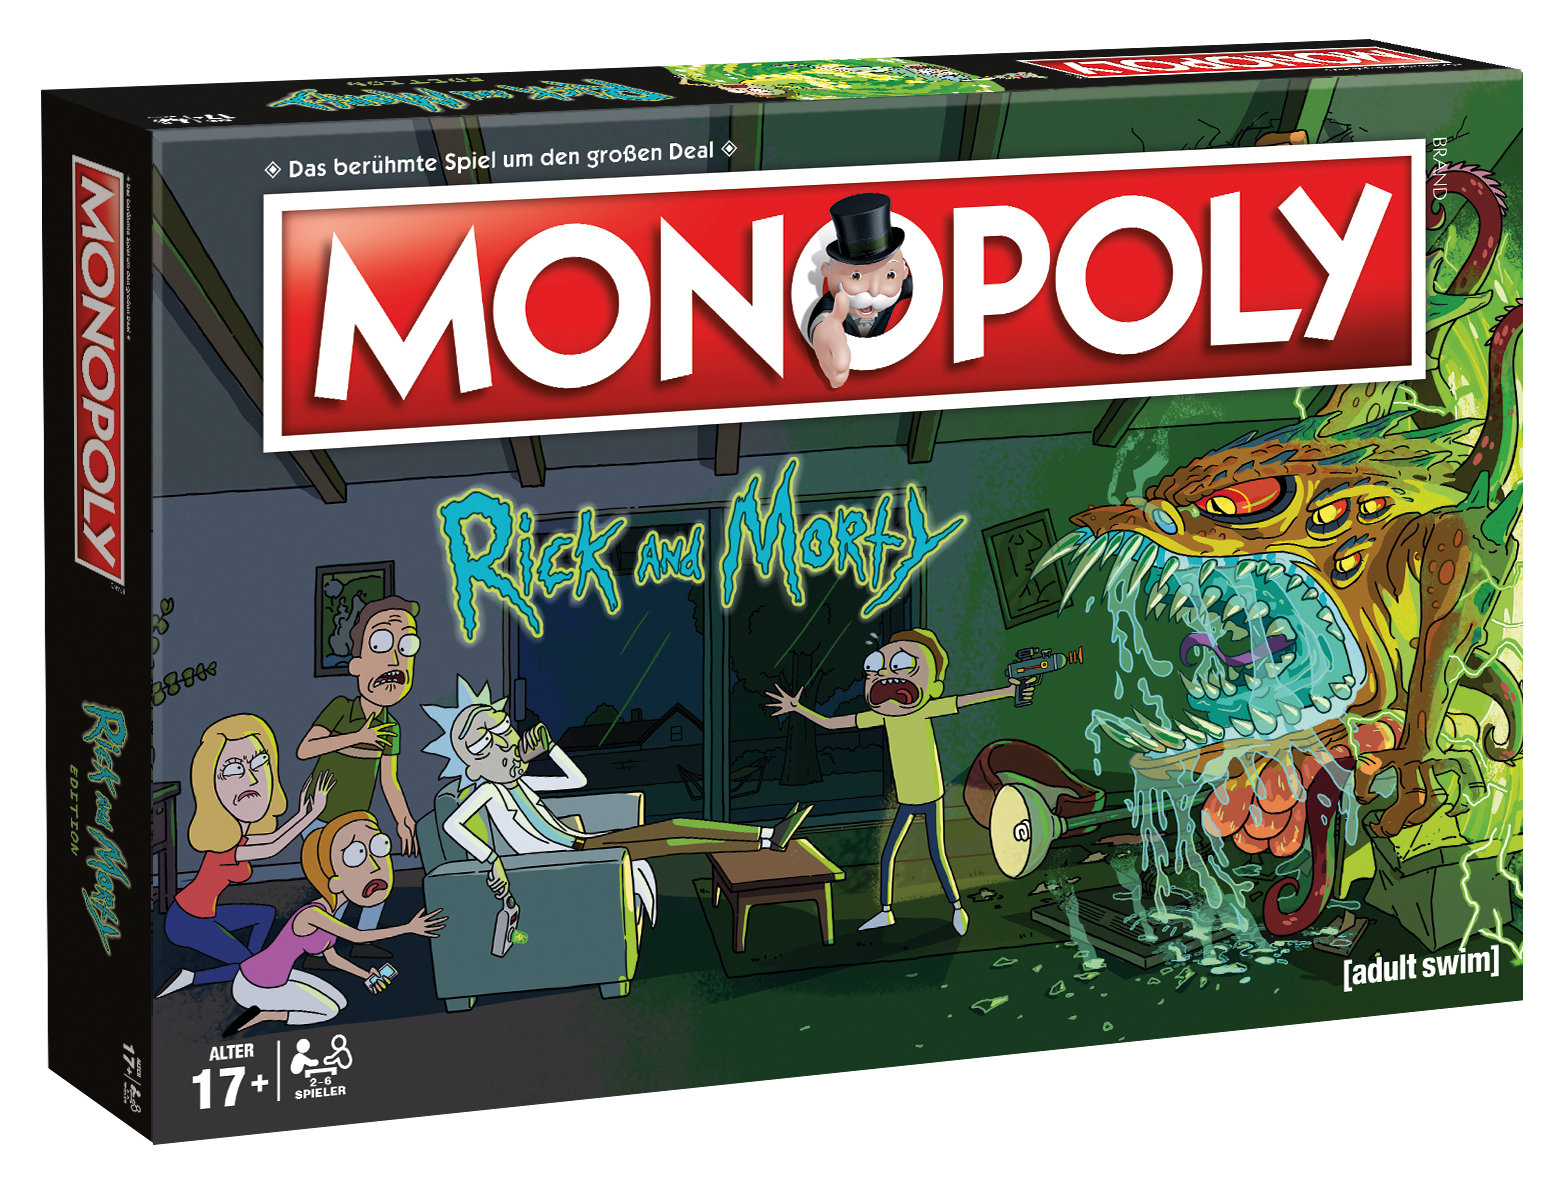 Monopoly Rick and Morty deutsch